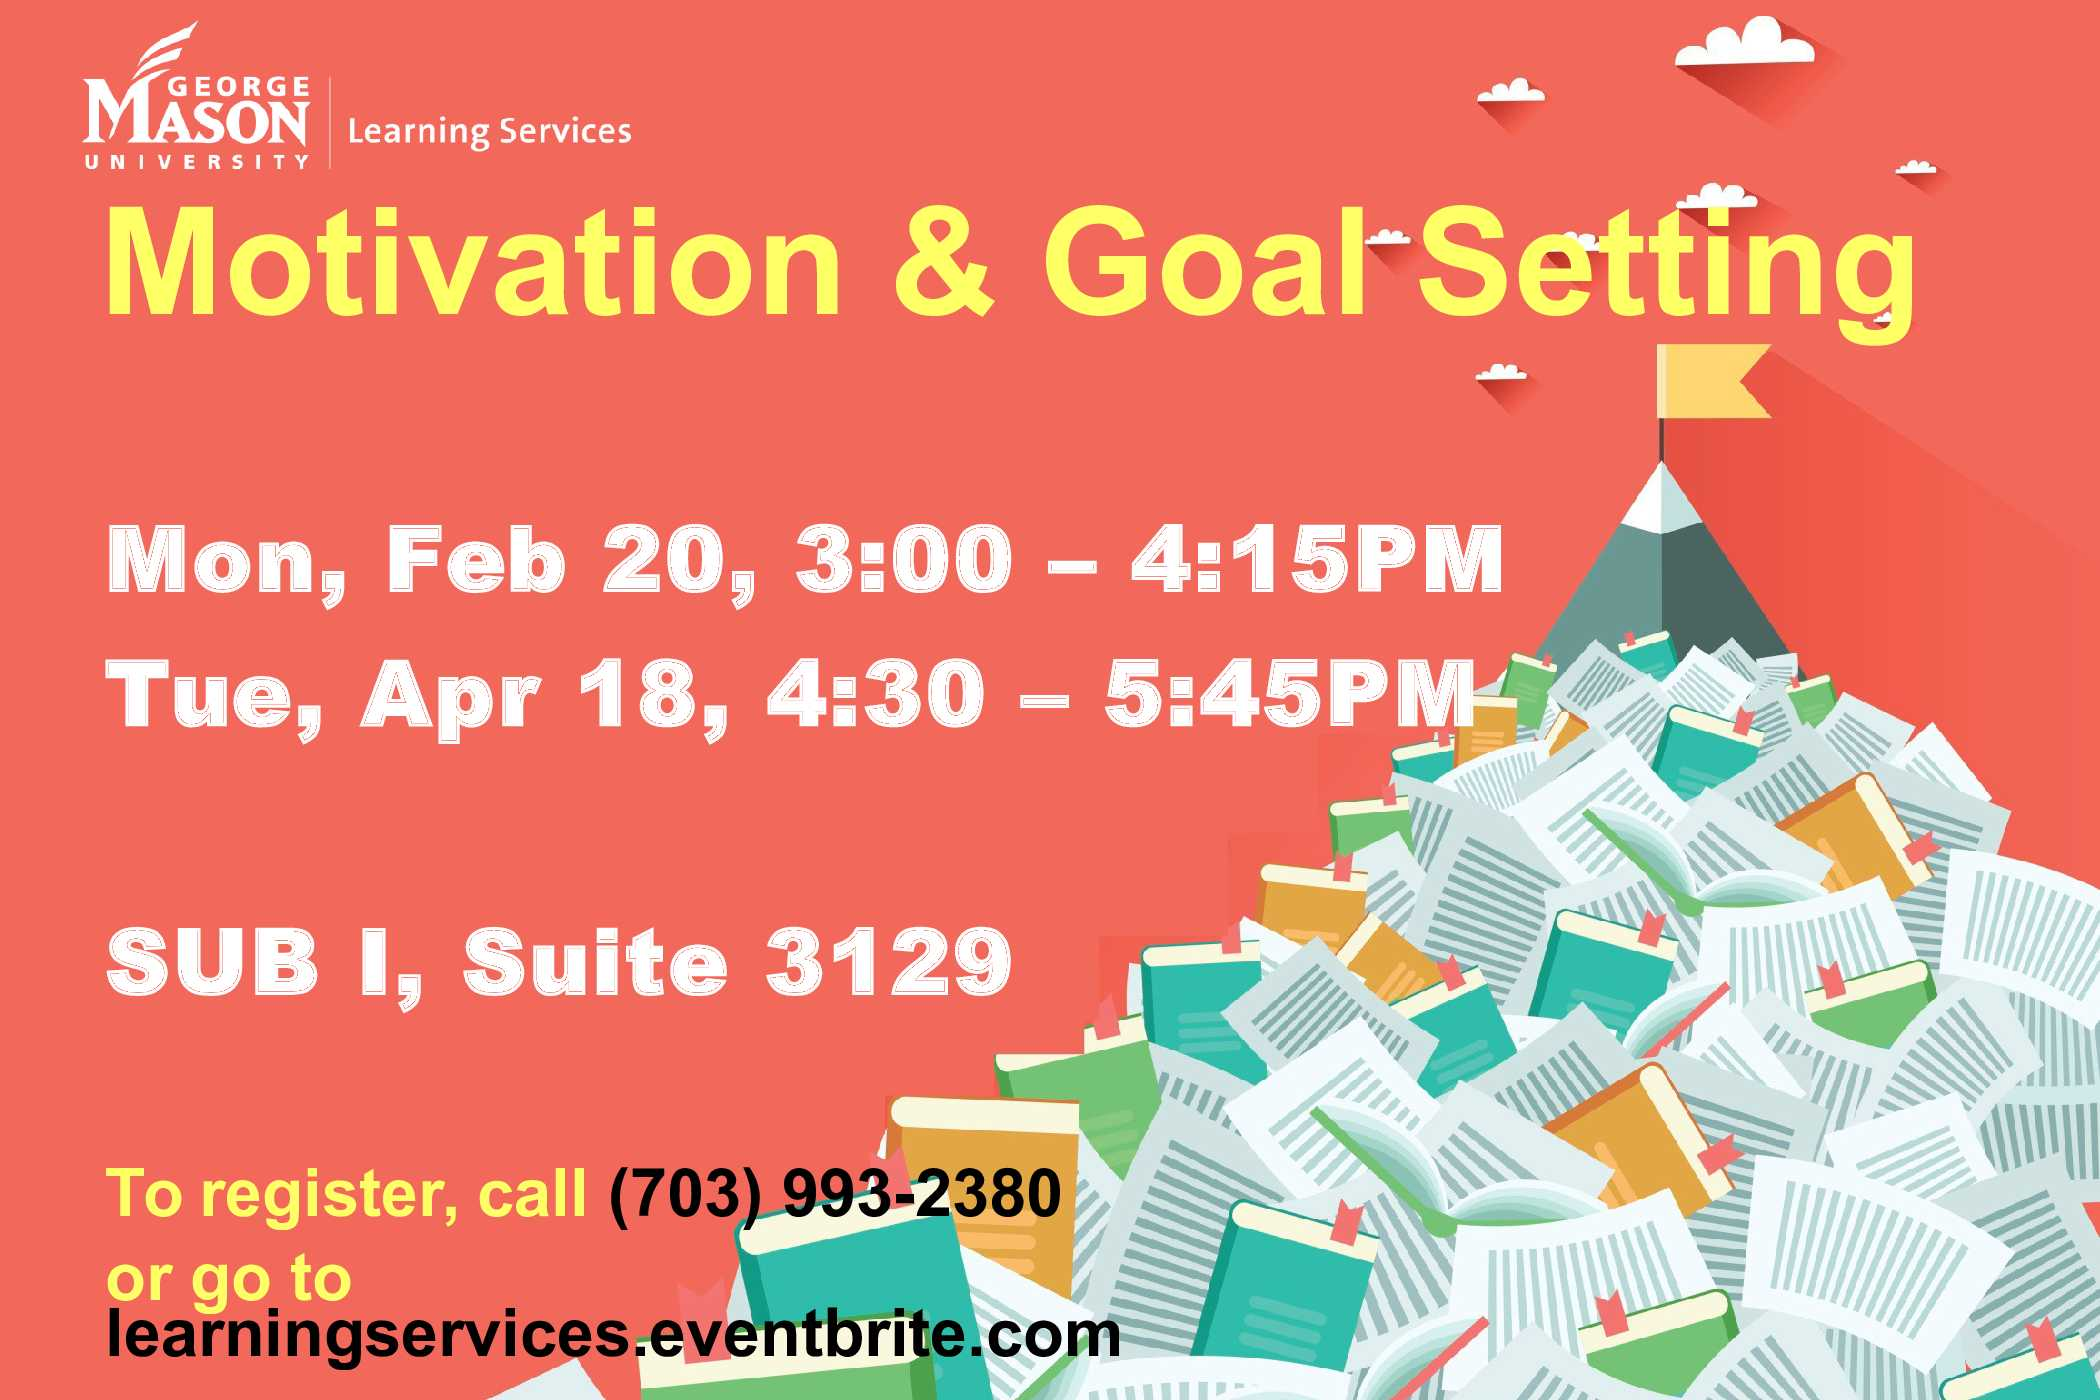 Information regarding Motivation & Goal Setting Workshop is as follows Start date (when you would like your content to be posted) is February 10 2017 and End Date  (when you would like your content to be removed from the screens) is April 19 2017 and File is Browse and Email is chahn2@gmu.edu and Name is Crystal Hahn and File Name is Motivation-Goal-Setting-Spring-2017_comp.jpg and Group Name is Learning Services and Panel for your ad to be displayed is Main and Affiliation is Mason Department and Name of Ad/Event is Motivation & Goal Setting Workshop and